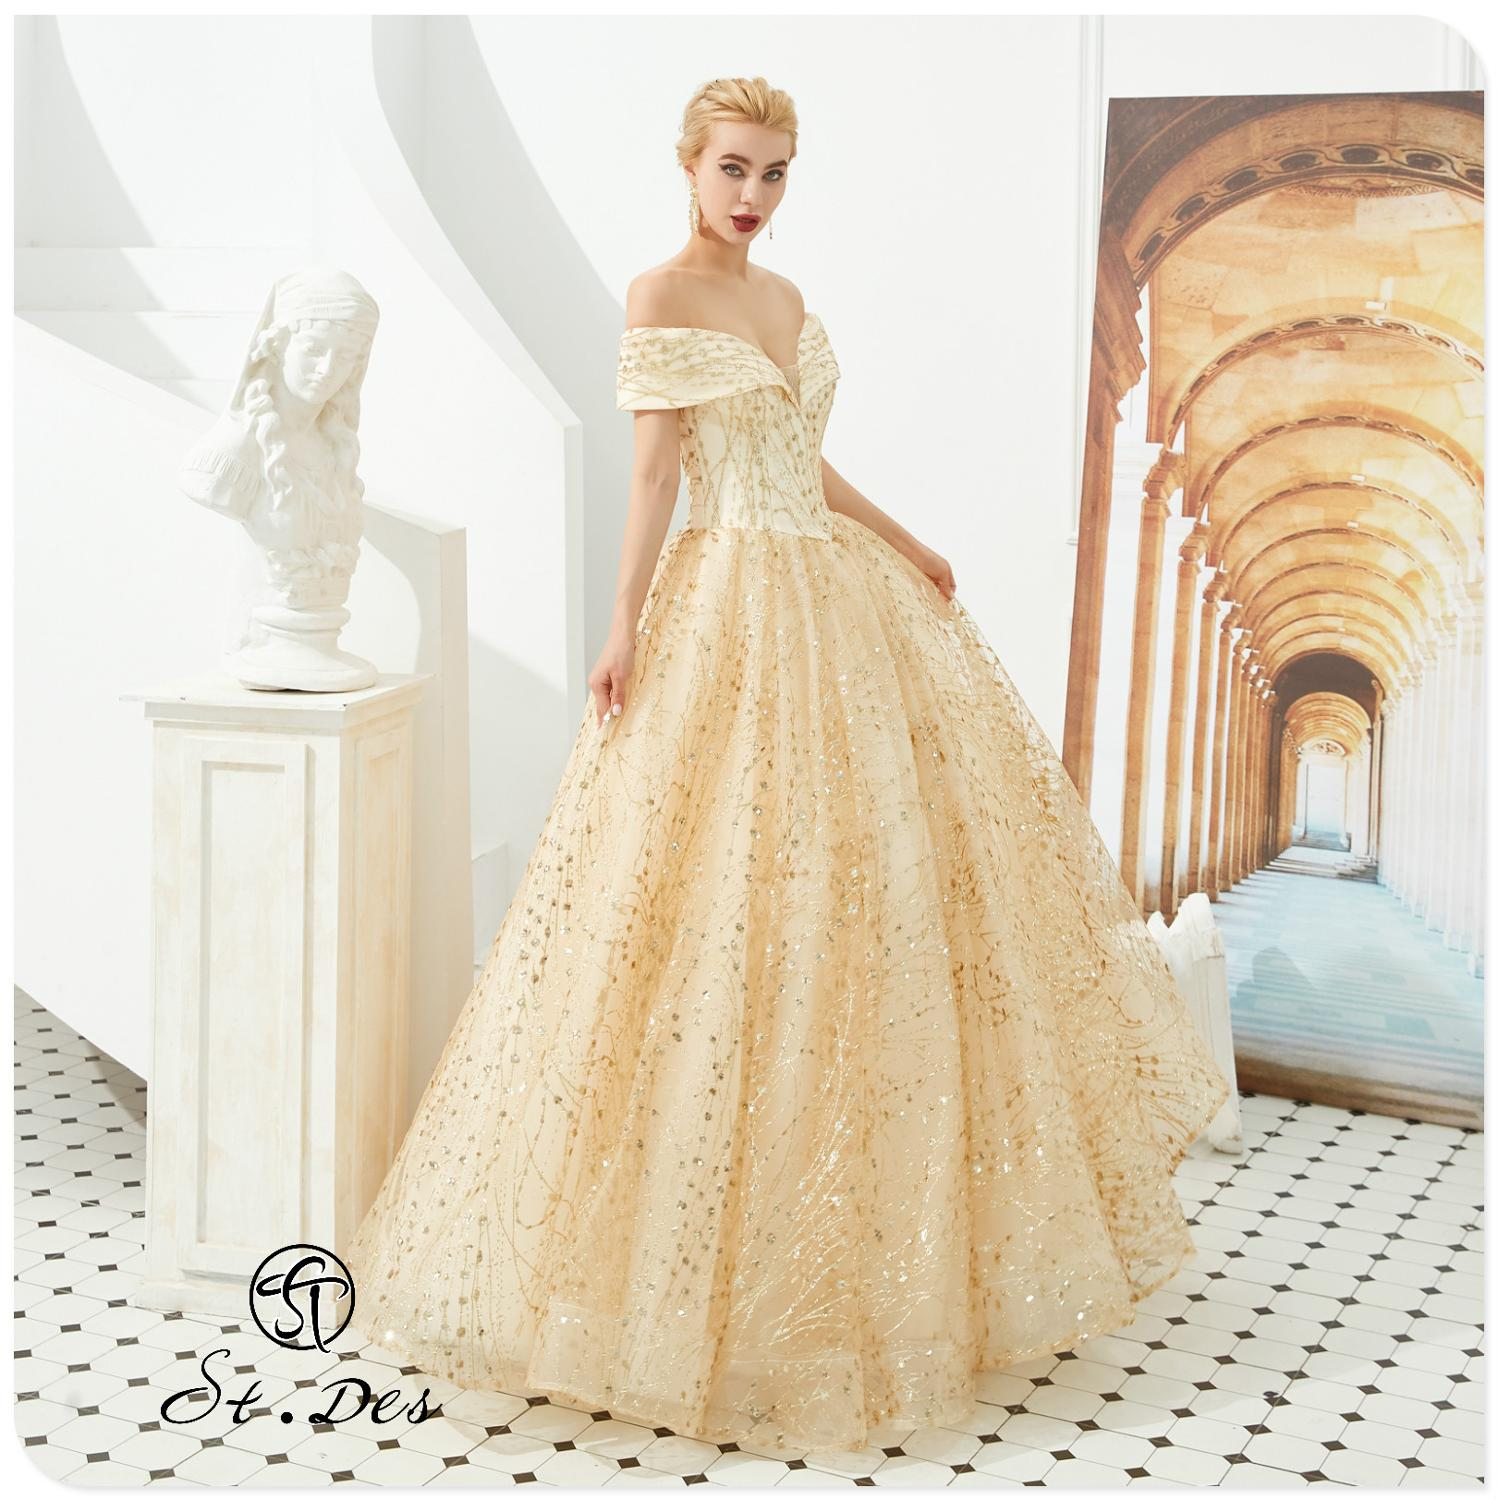 NEW Arrival 2020 St.Des A-line Off The Shoulder Russian Champagne Beading Designer Floor Length Evening Dress Party Dress Gowns